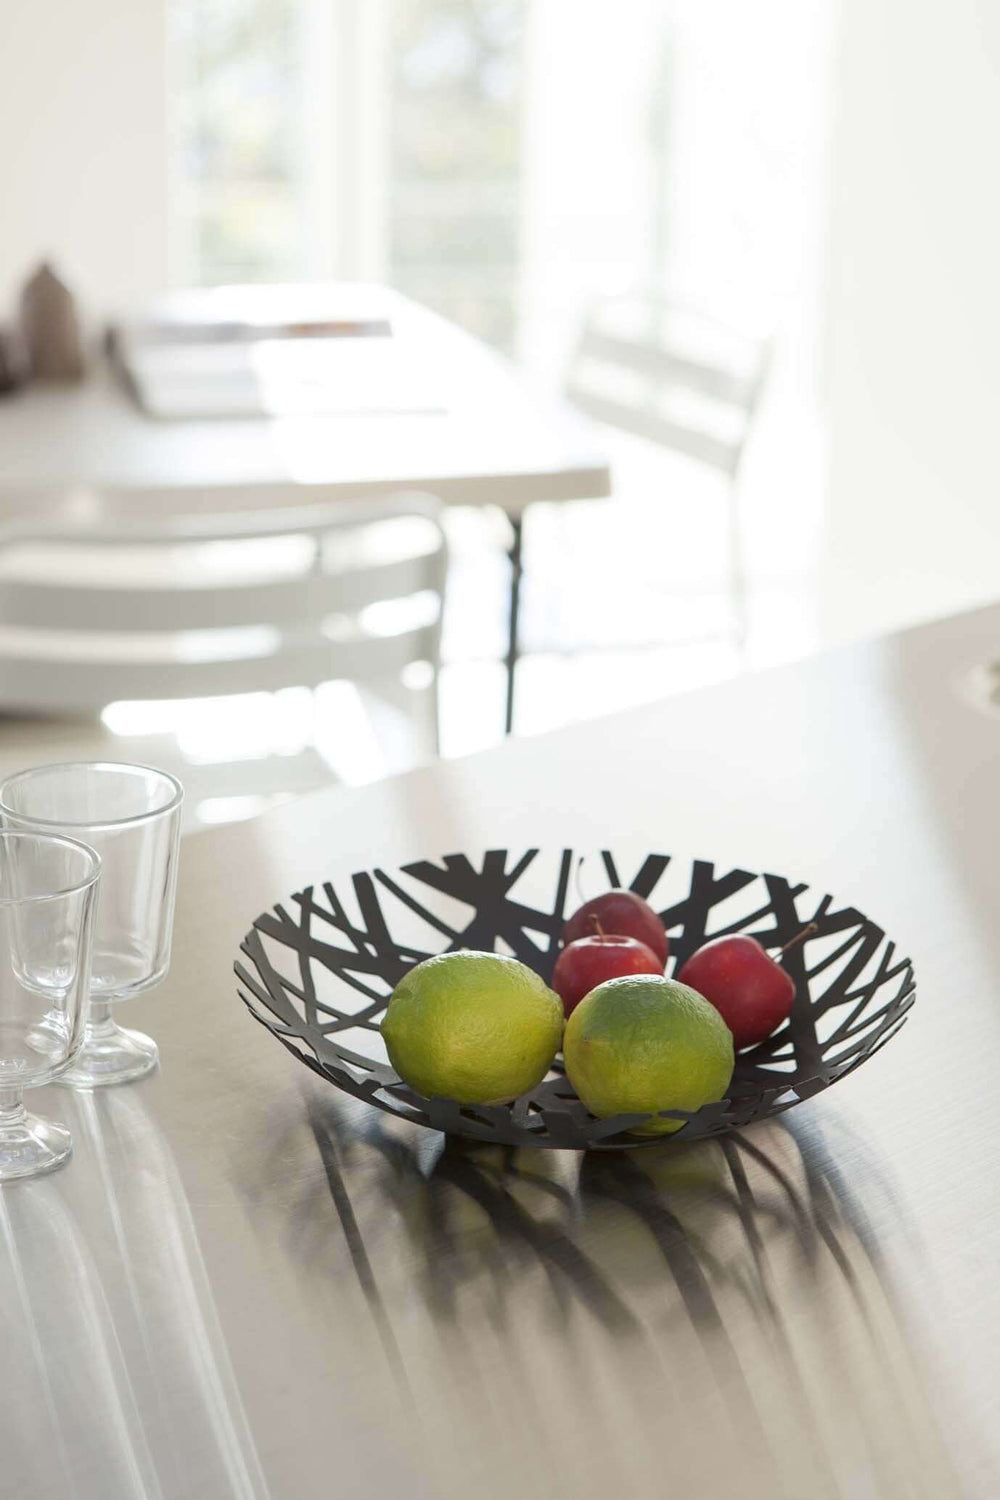 Black Yamazaki fruit bowl with cutouts holding fruit in a kitchen.